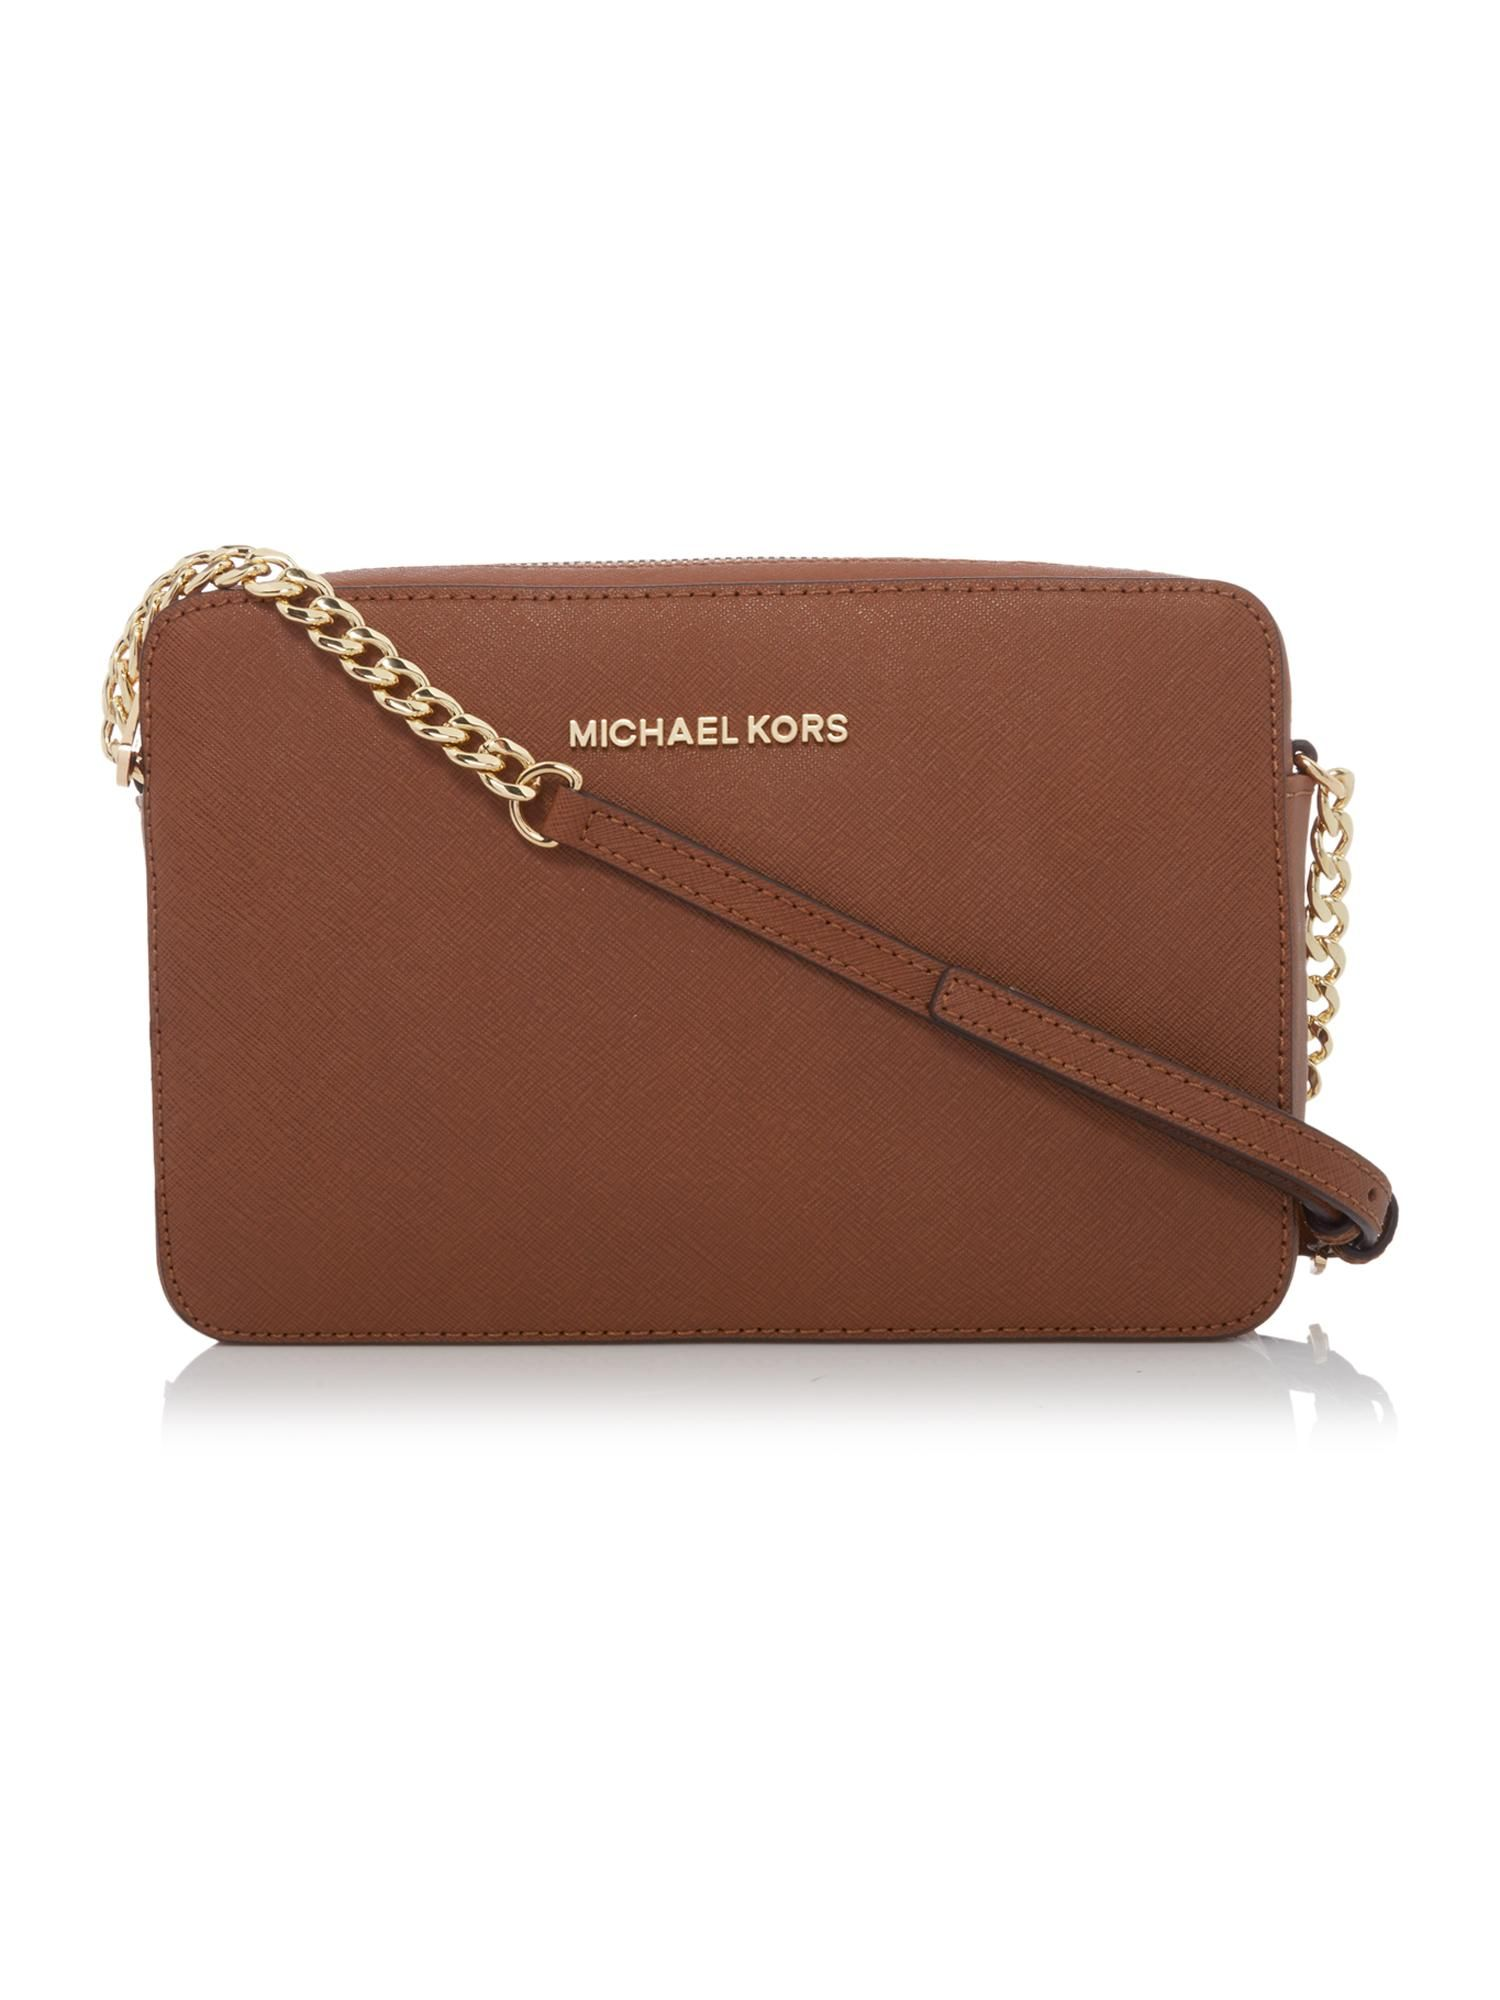 3059372815d1 155GBP Buy your Michael Kors Jet Set Travel Small Tan Cross Body Bag online  now at House of Fraser. Why not Buy and Collect in-store